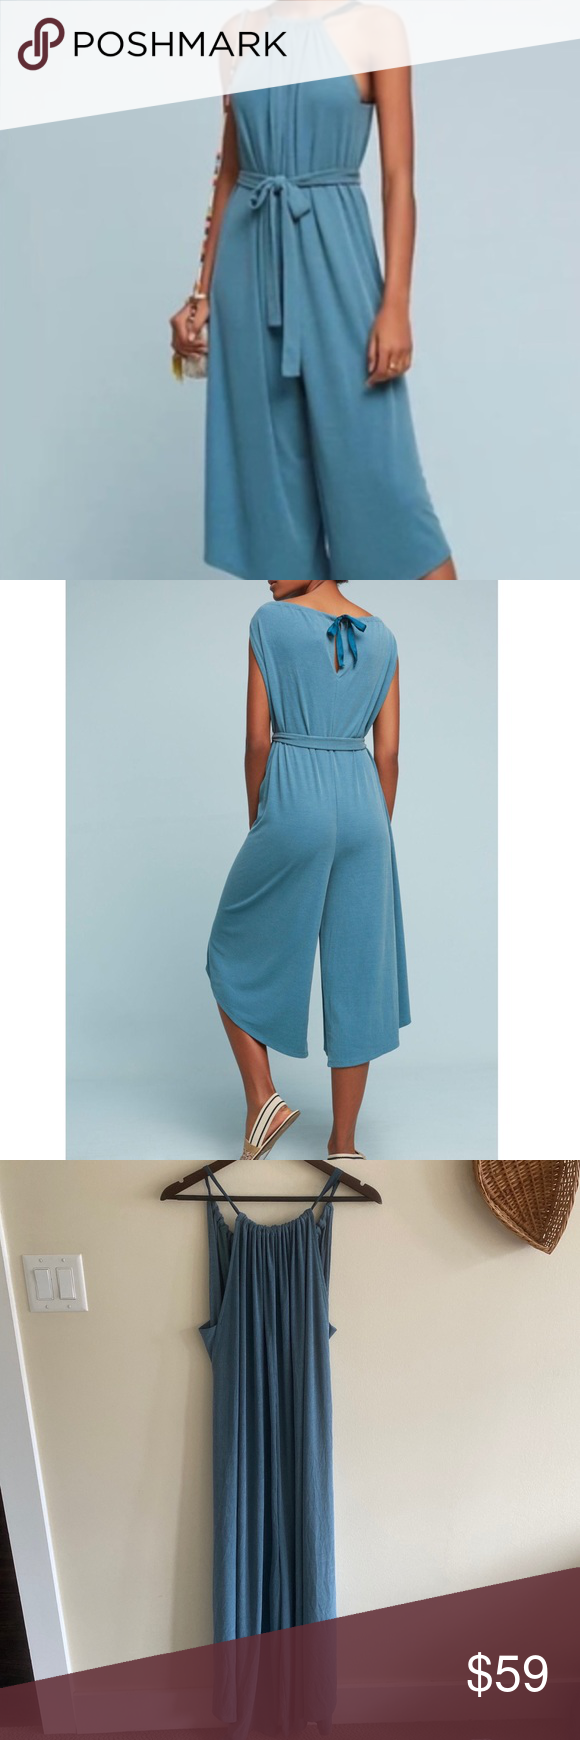 Anthropologie Jacenta Wide-leg Jumpsuit HD in Paris by Anthropolgie. Blue ribbed playsuit / jumpsuit. Super comfy, soft material. Wide leg. Ribbon tie closures. Regularly $118. 76% modal 24% polyester Very flowy and loose fitting. Anthropologie Pants Jumpsuits & Rompers #jumpsuitromper